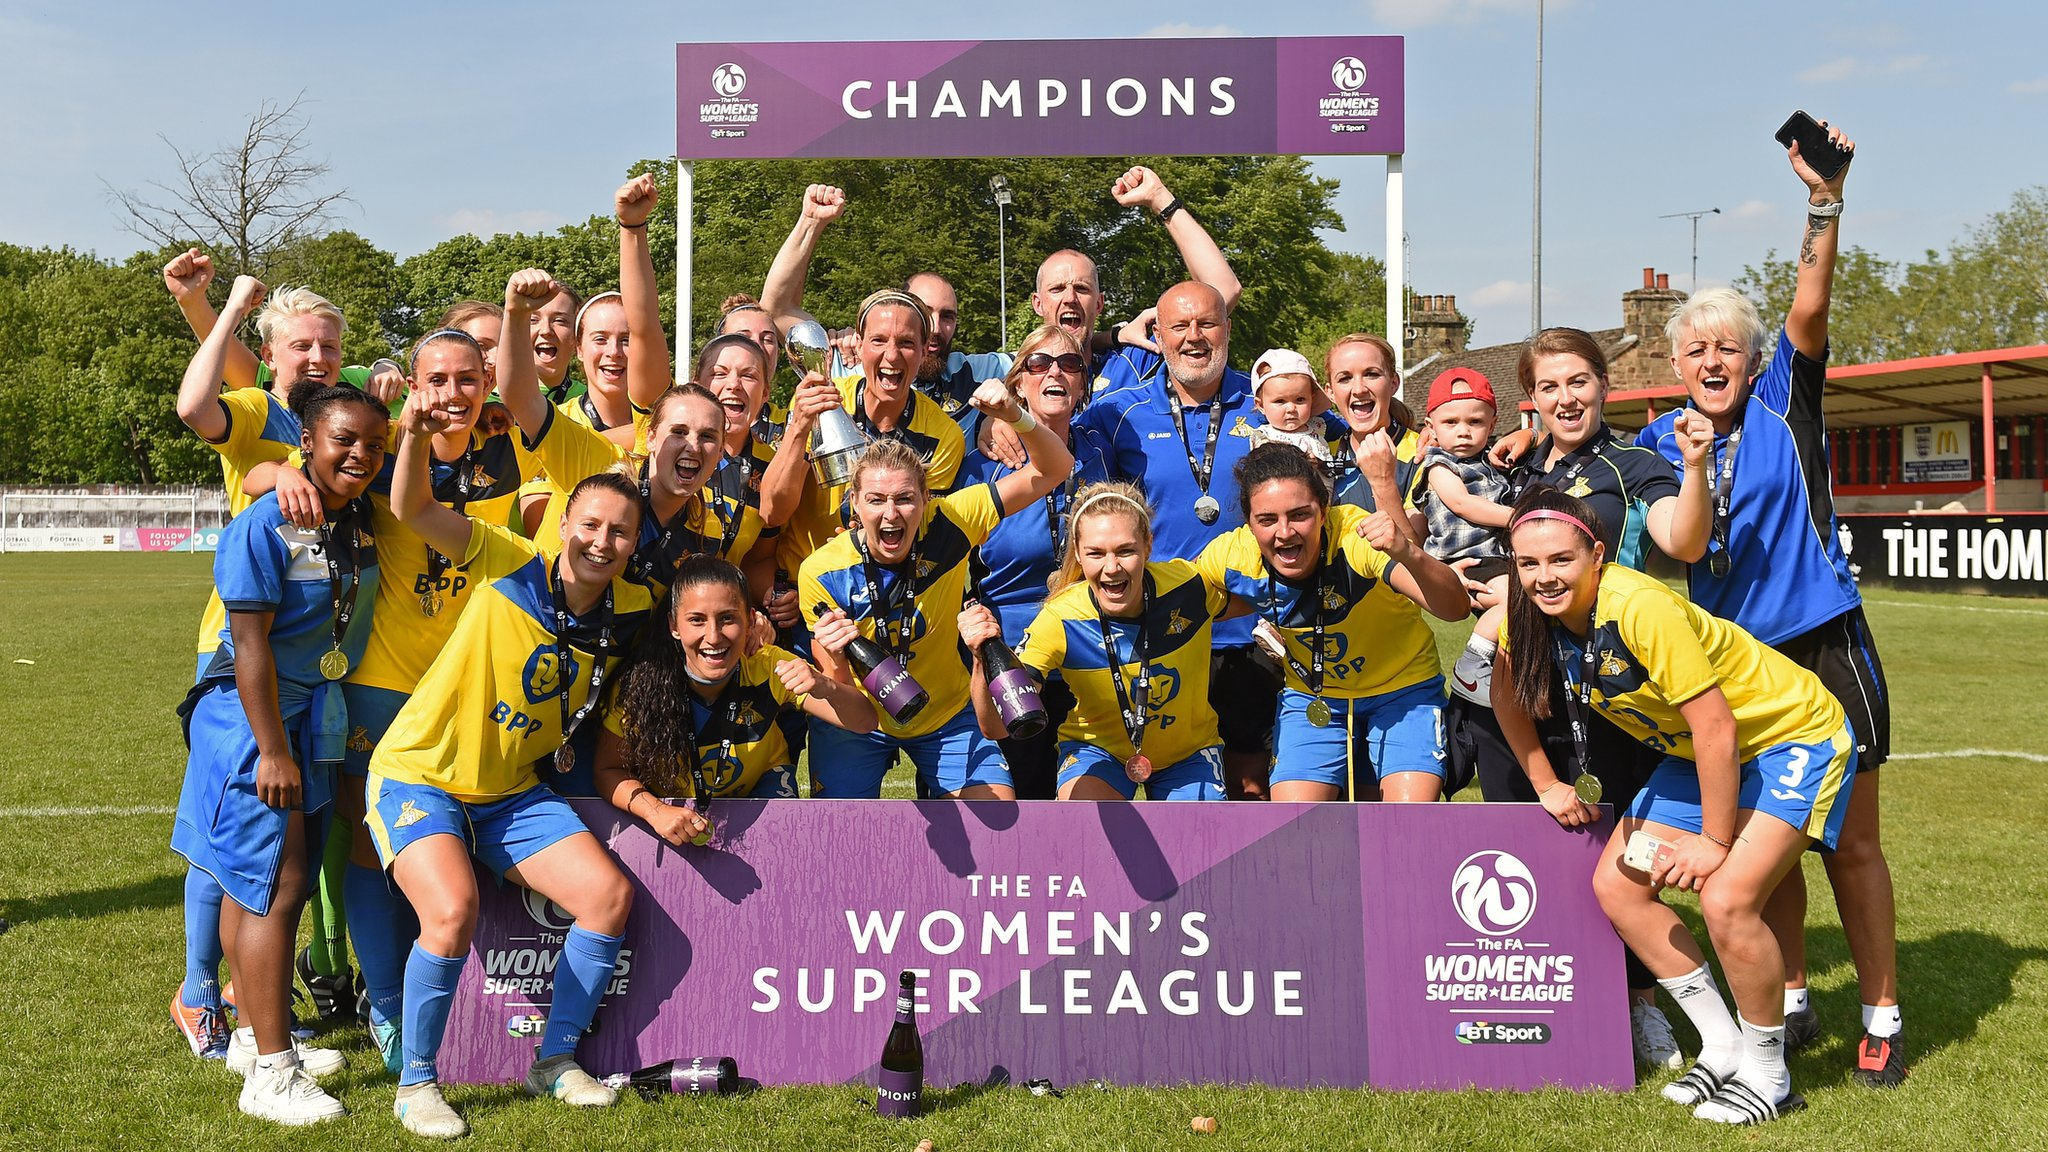 Doncaster Belles discuss merger with Doncaster Rovers